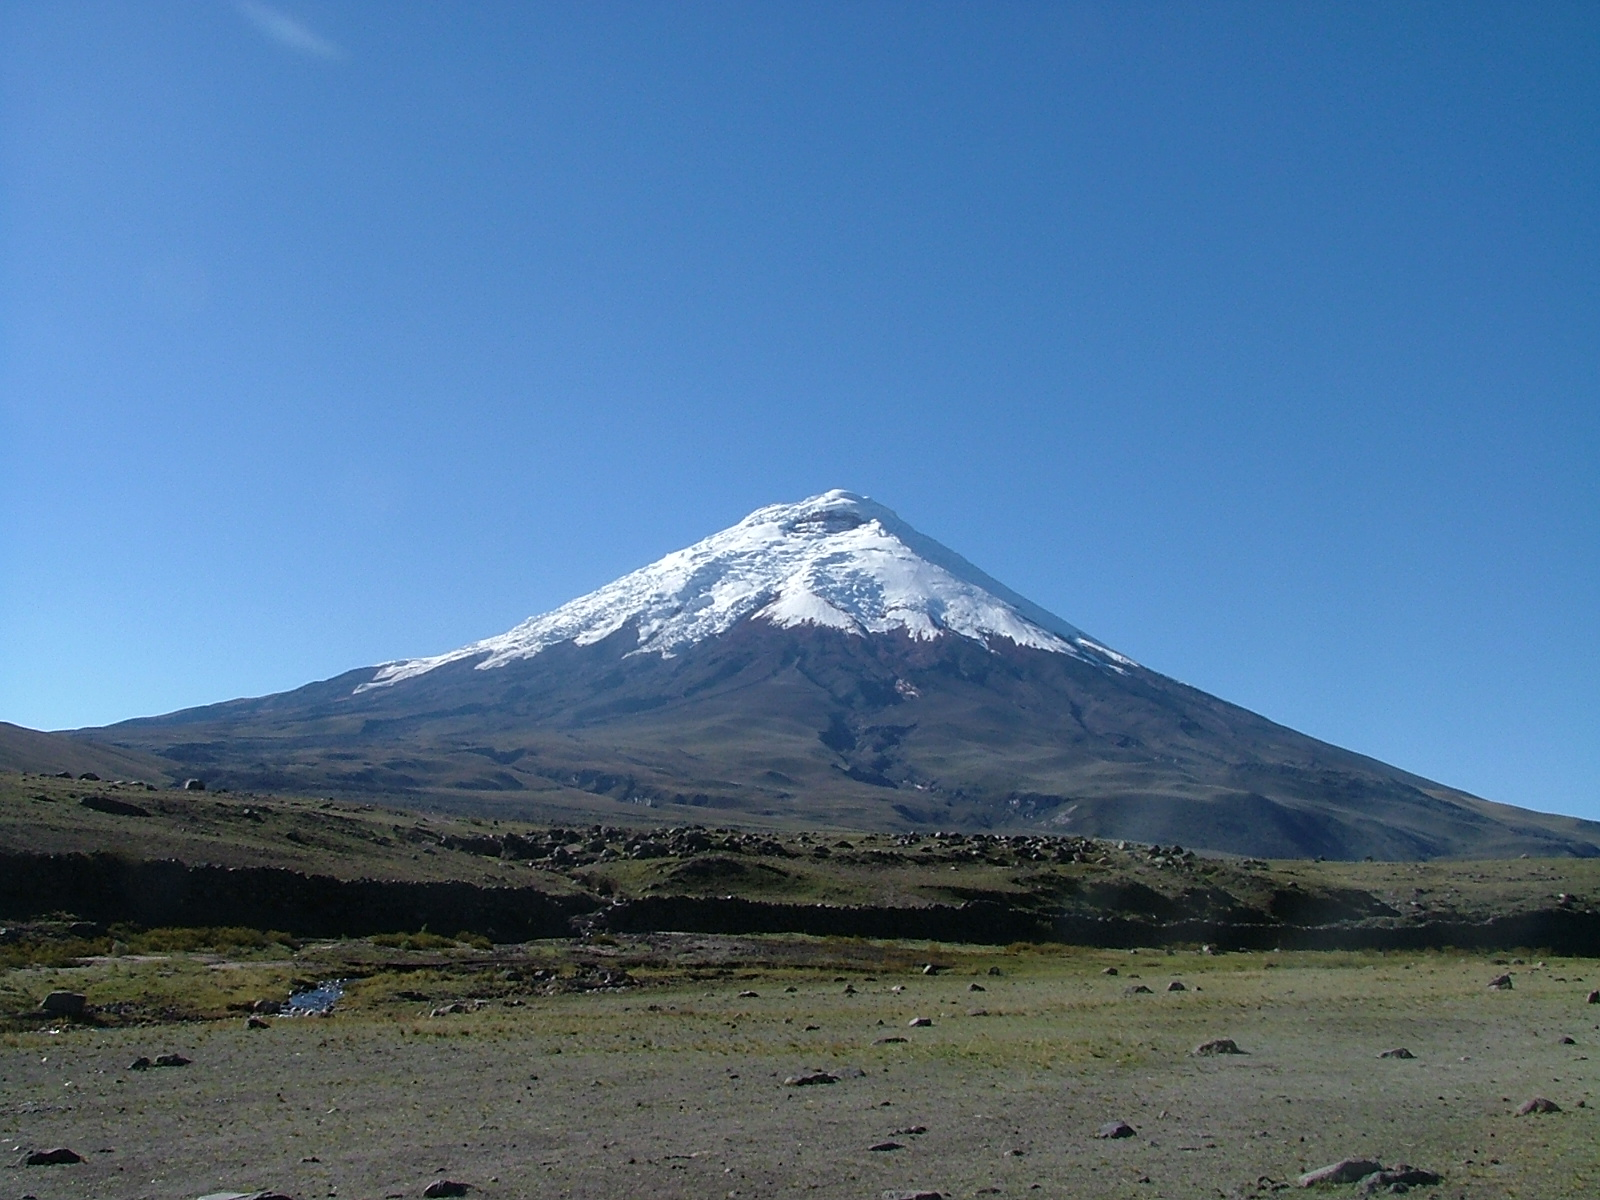 Andes Cotopaxi from Tambopaxi 04